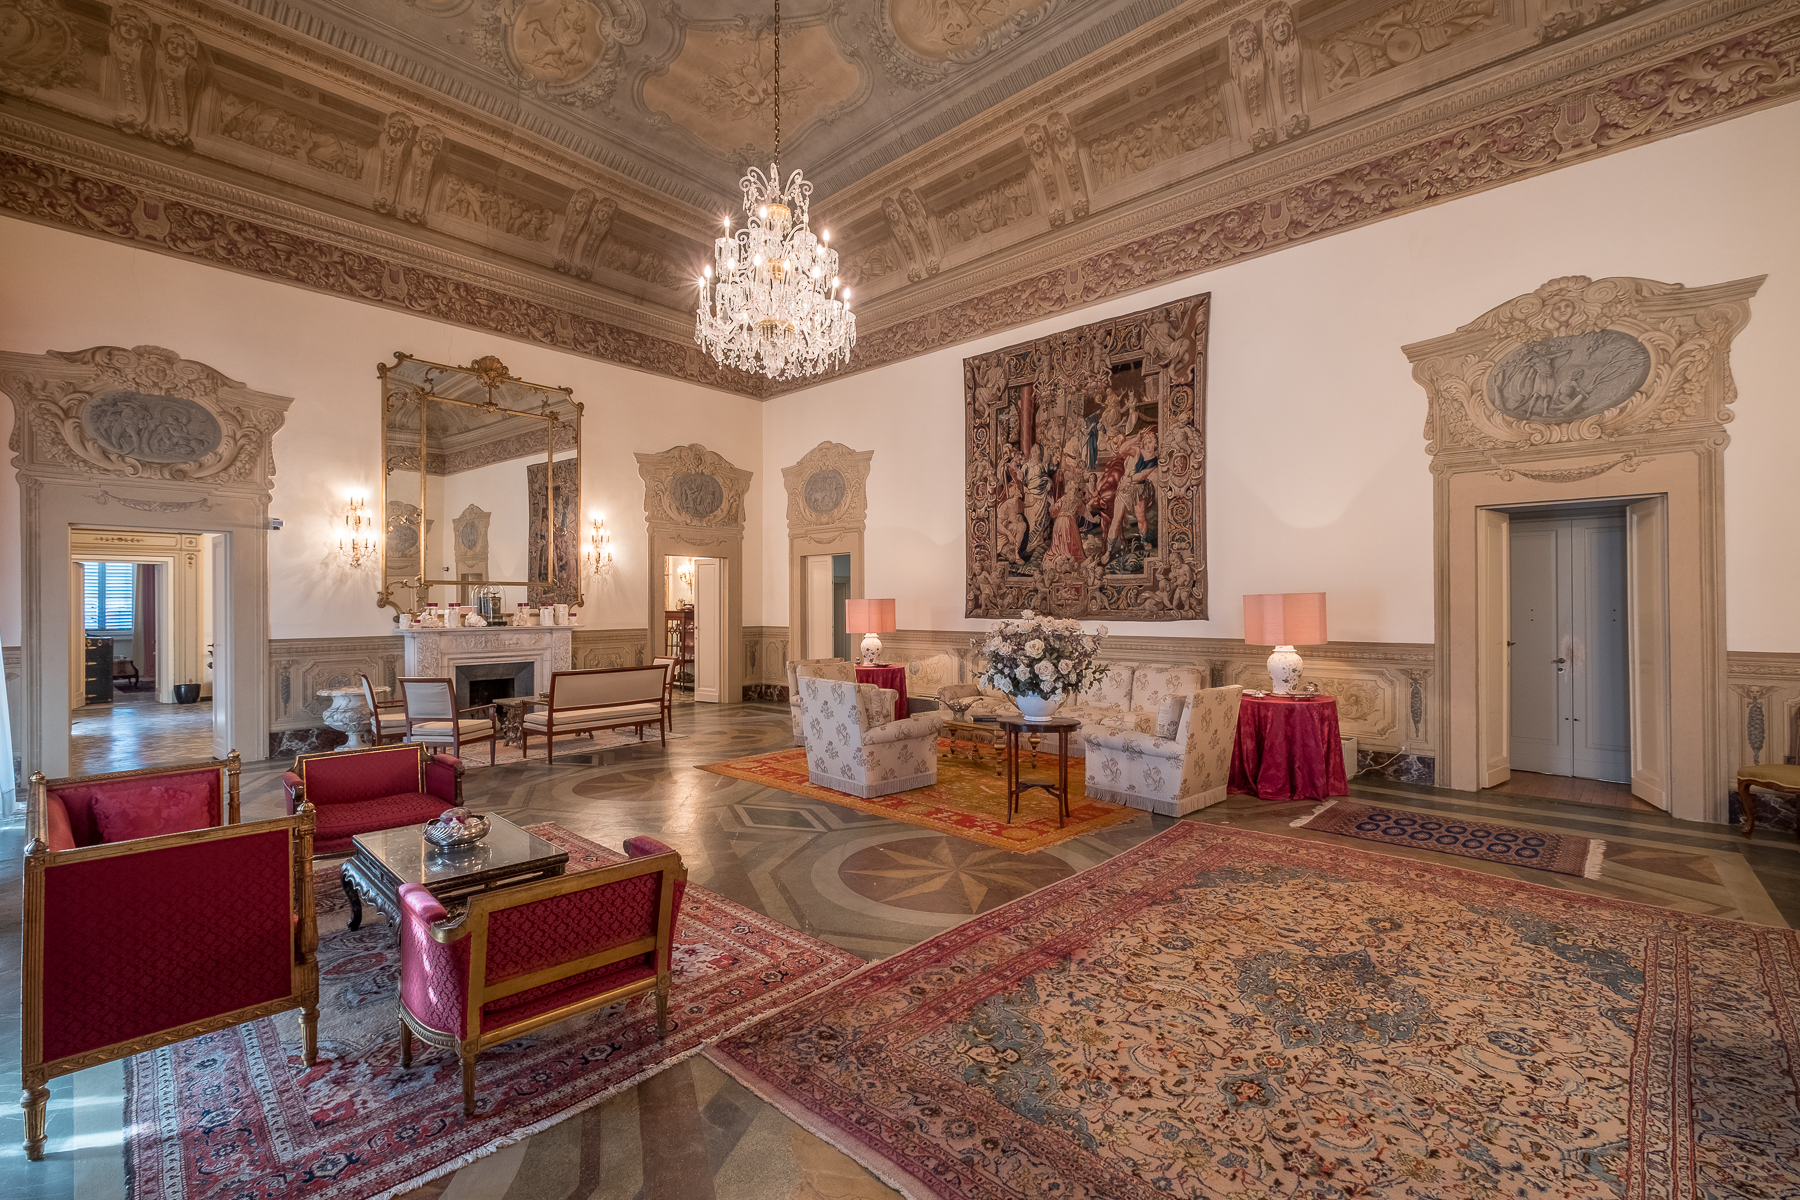 Single Family Home for Sale at Breathtaking apartment on the Florentine hills Firenze, Florence Italy